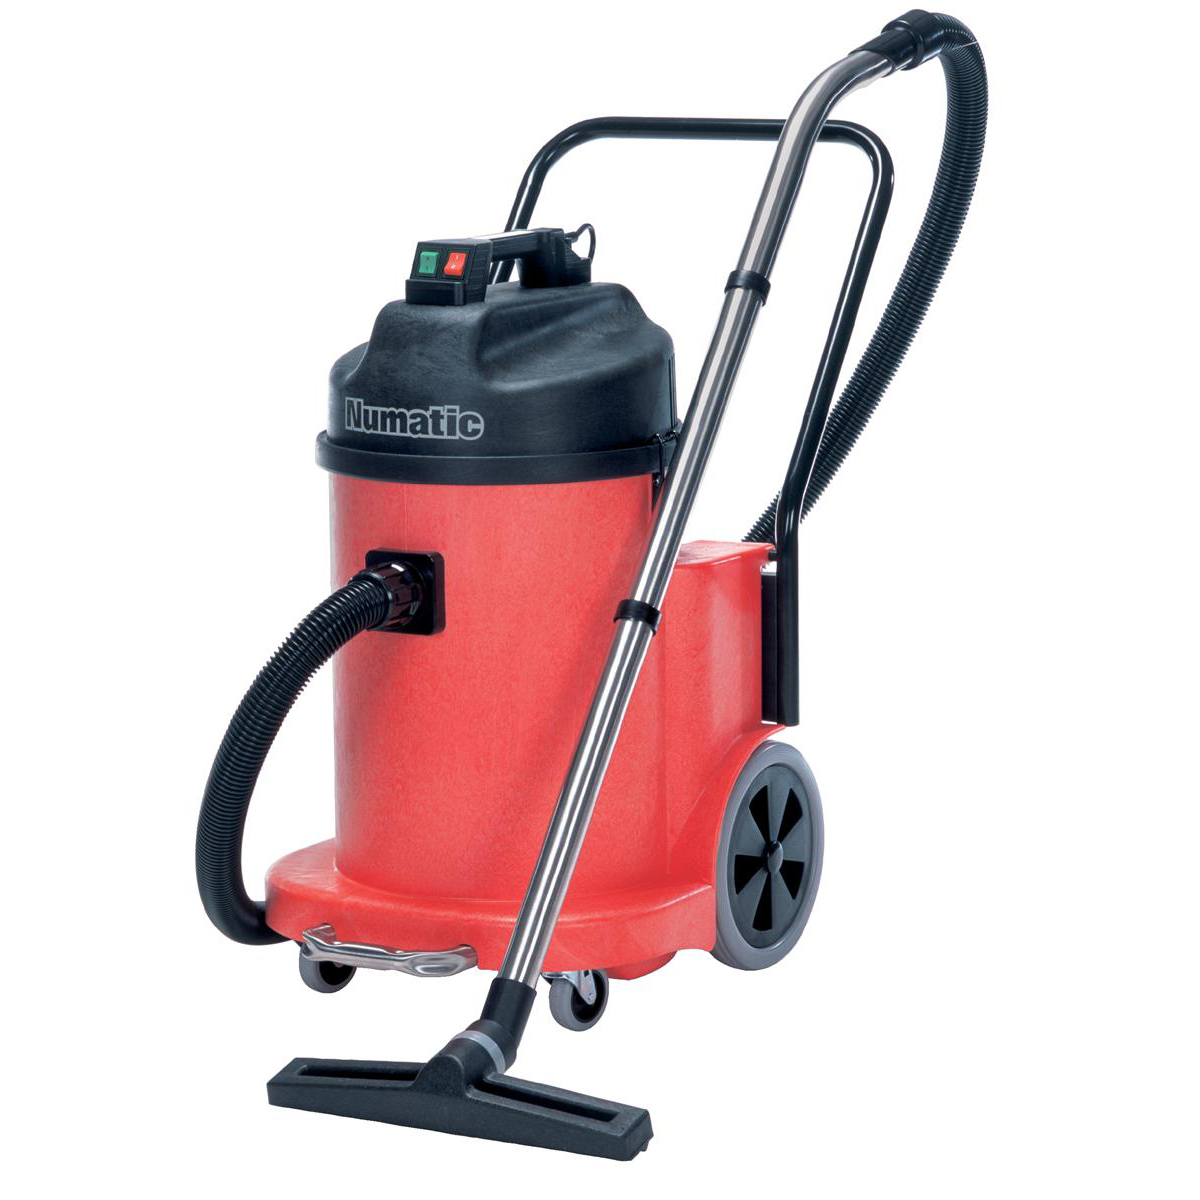 Numatic Large Dry Vacuum Cleaner Twinflo 960W Motor Capacity 40 Litres Inc. Accessory Kit Ref NVQ900